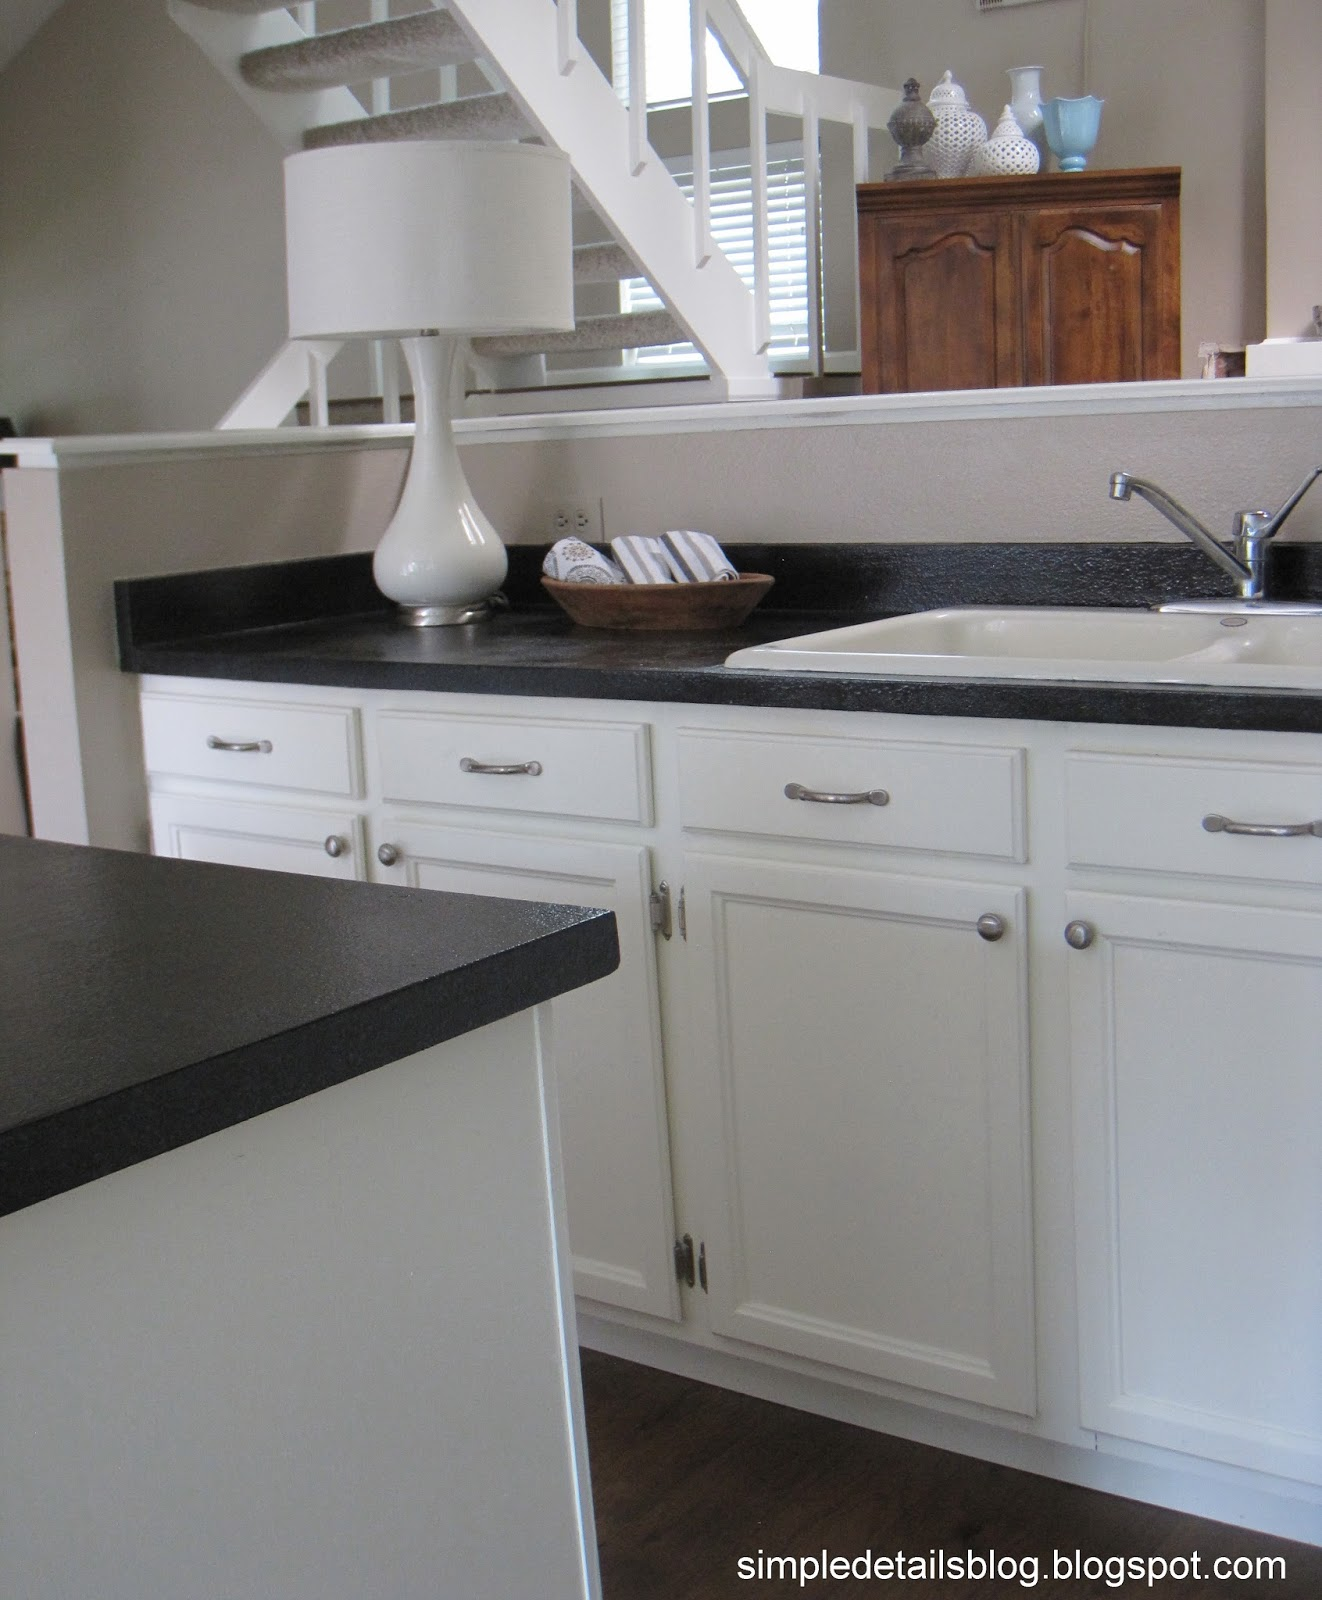 Home Makover: Simple Details: 80's Tract Home Kitchen Makeover